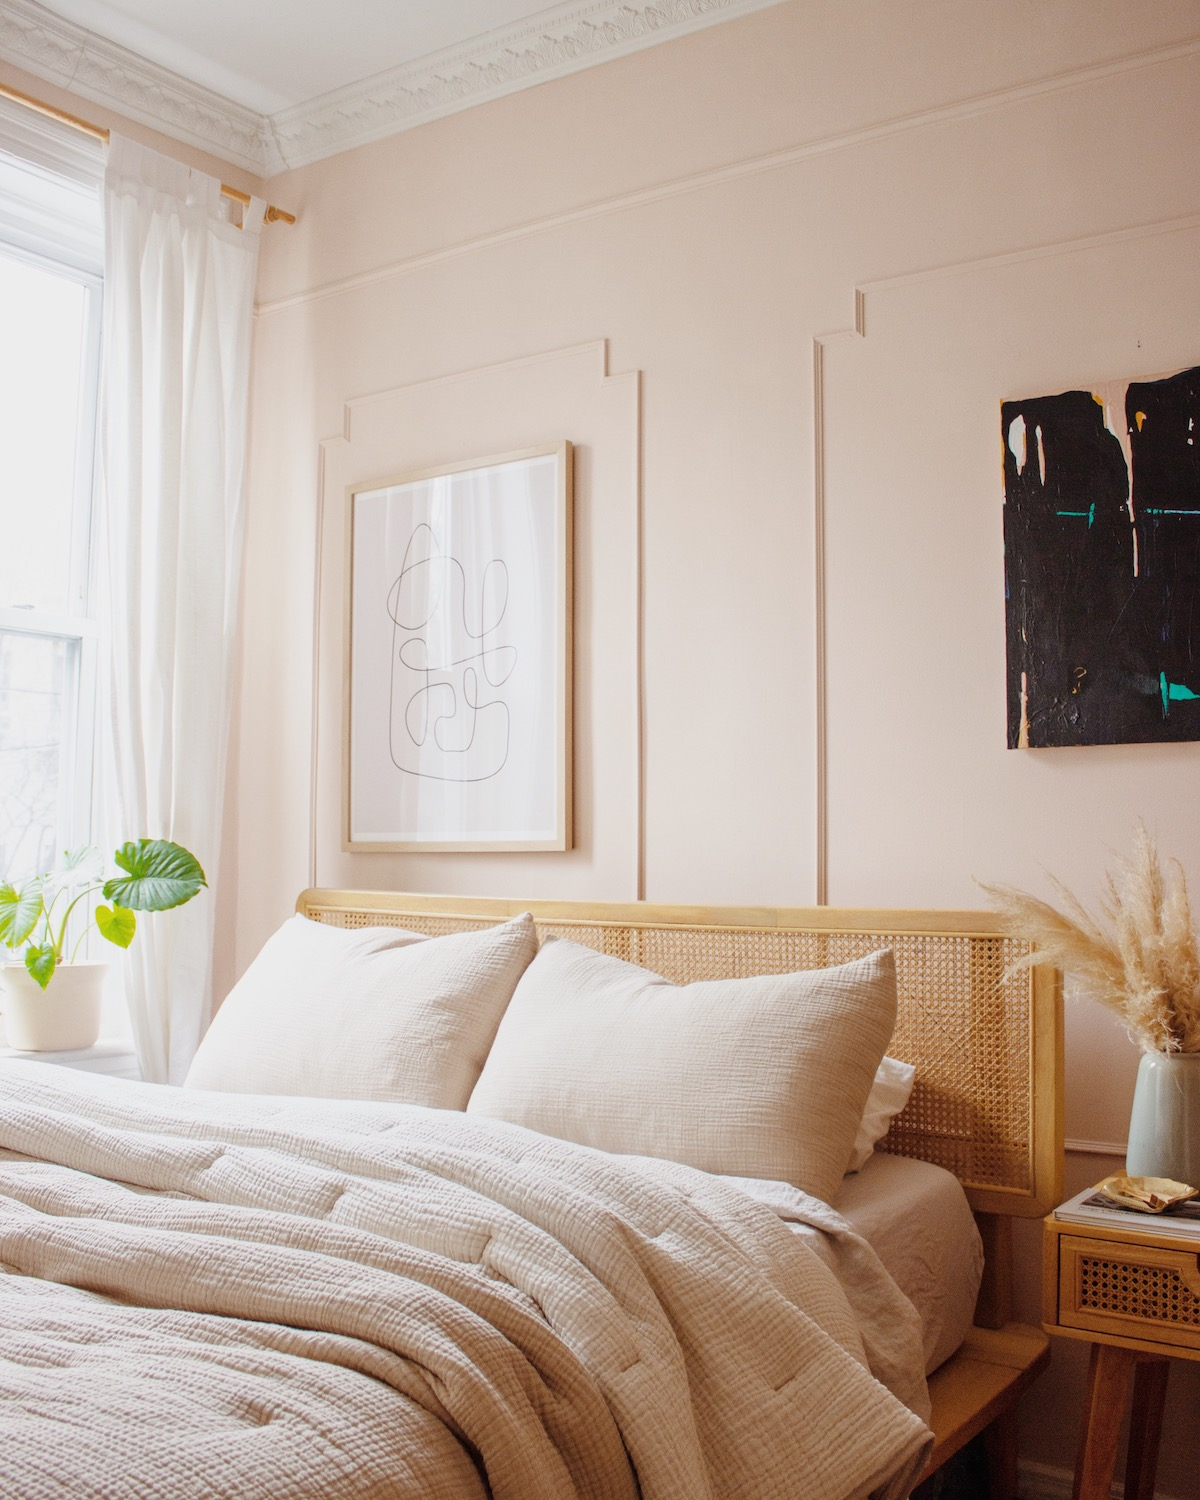 Bedroom decorated in all blush with small plant in corner